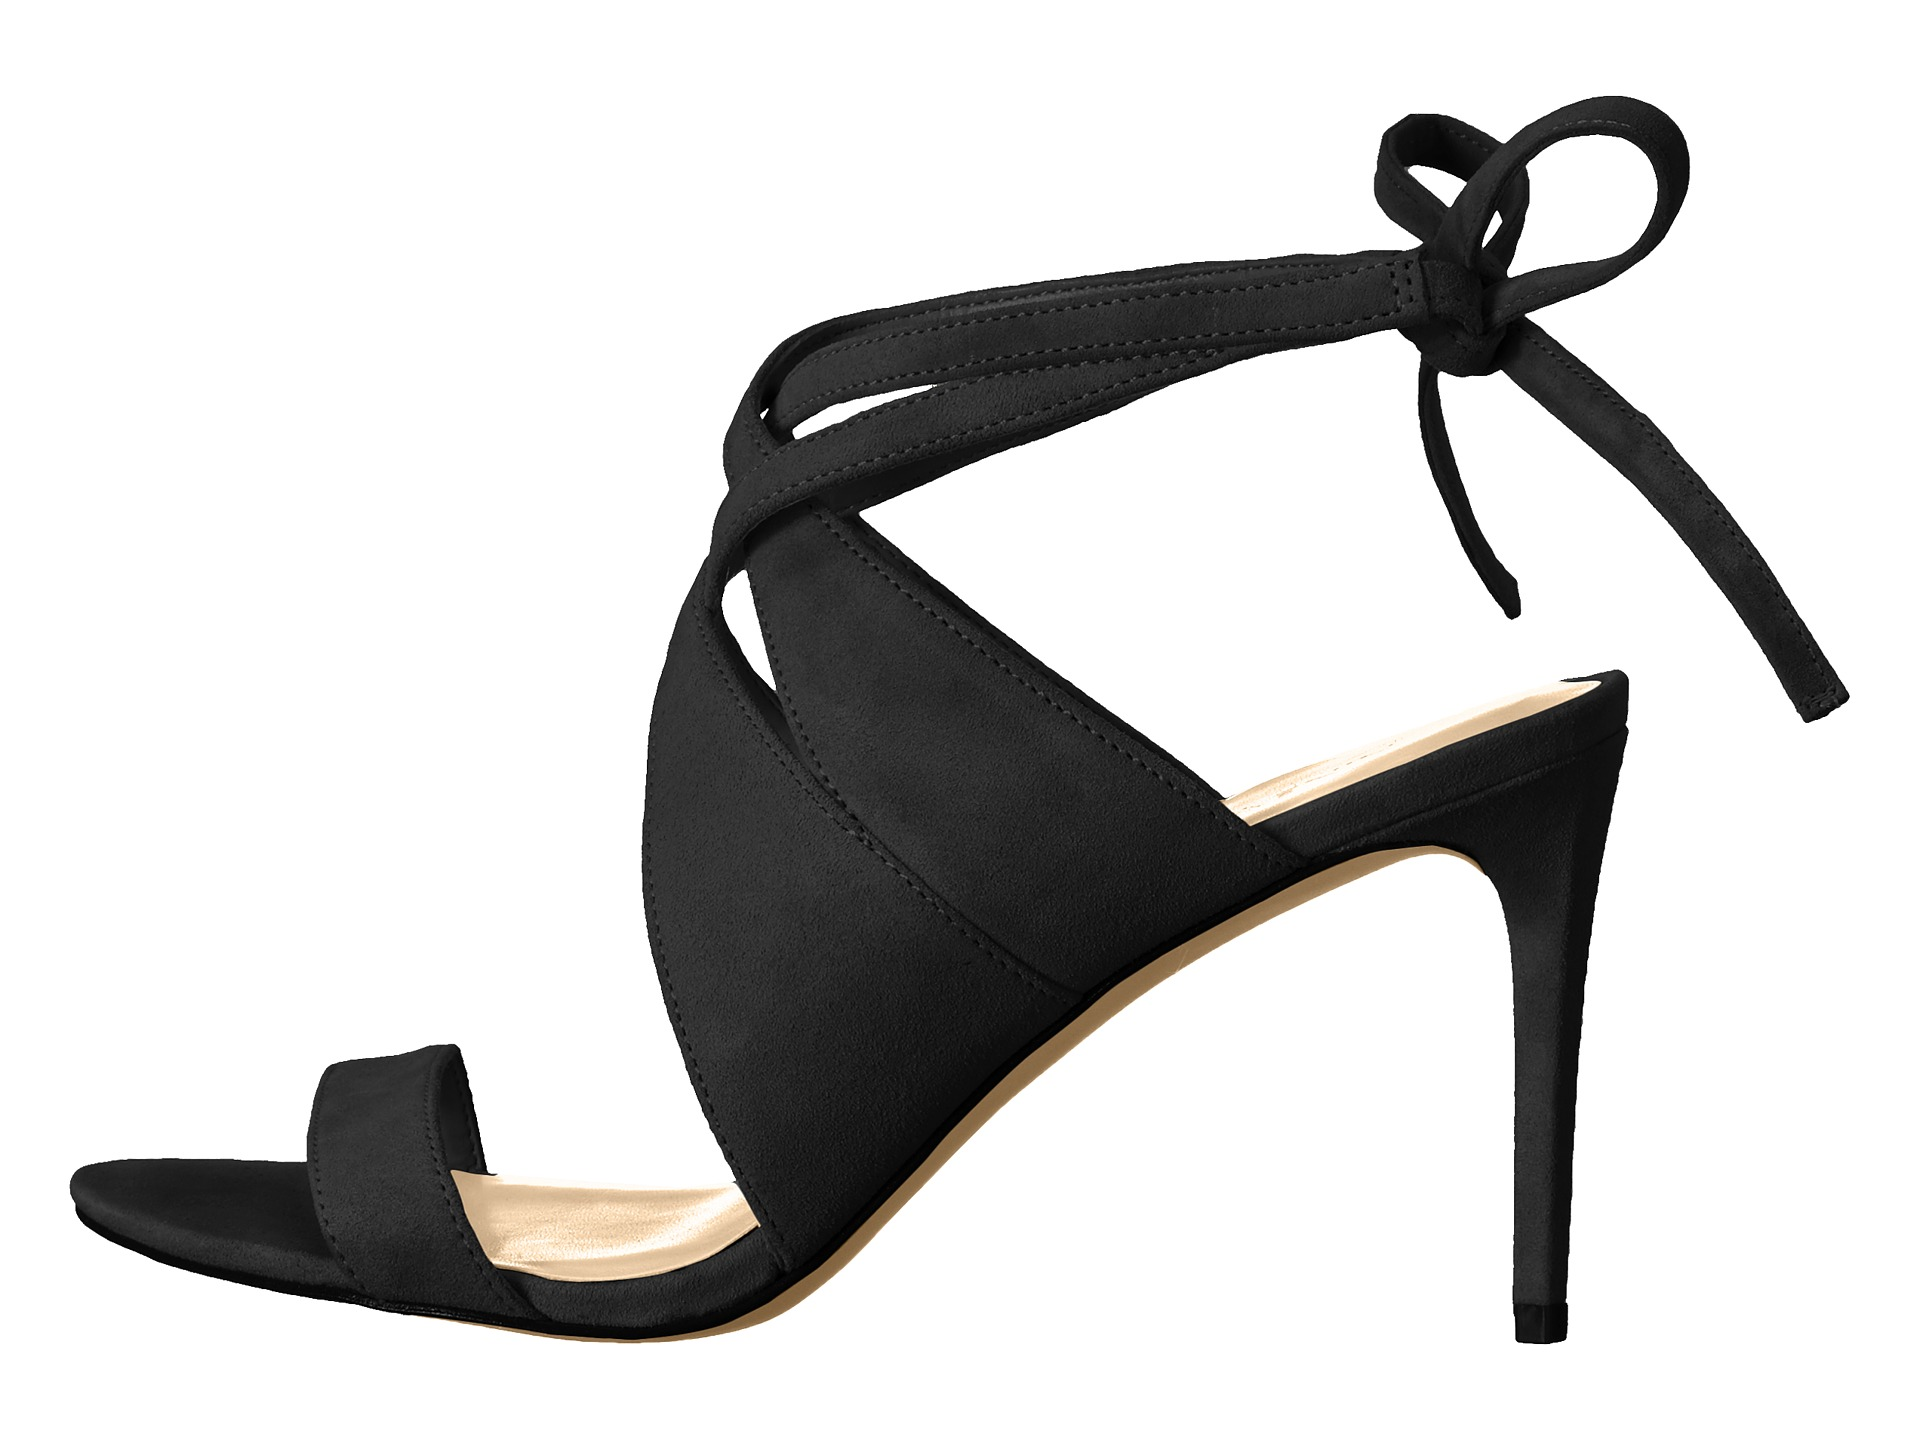 Nine West Ronnie Black Suede Zappos Com Free Shipping